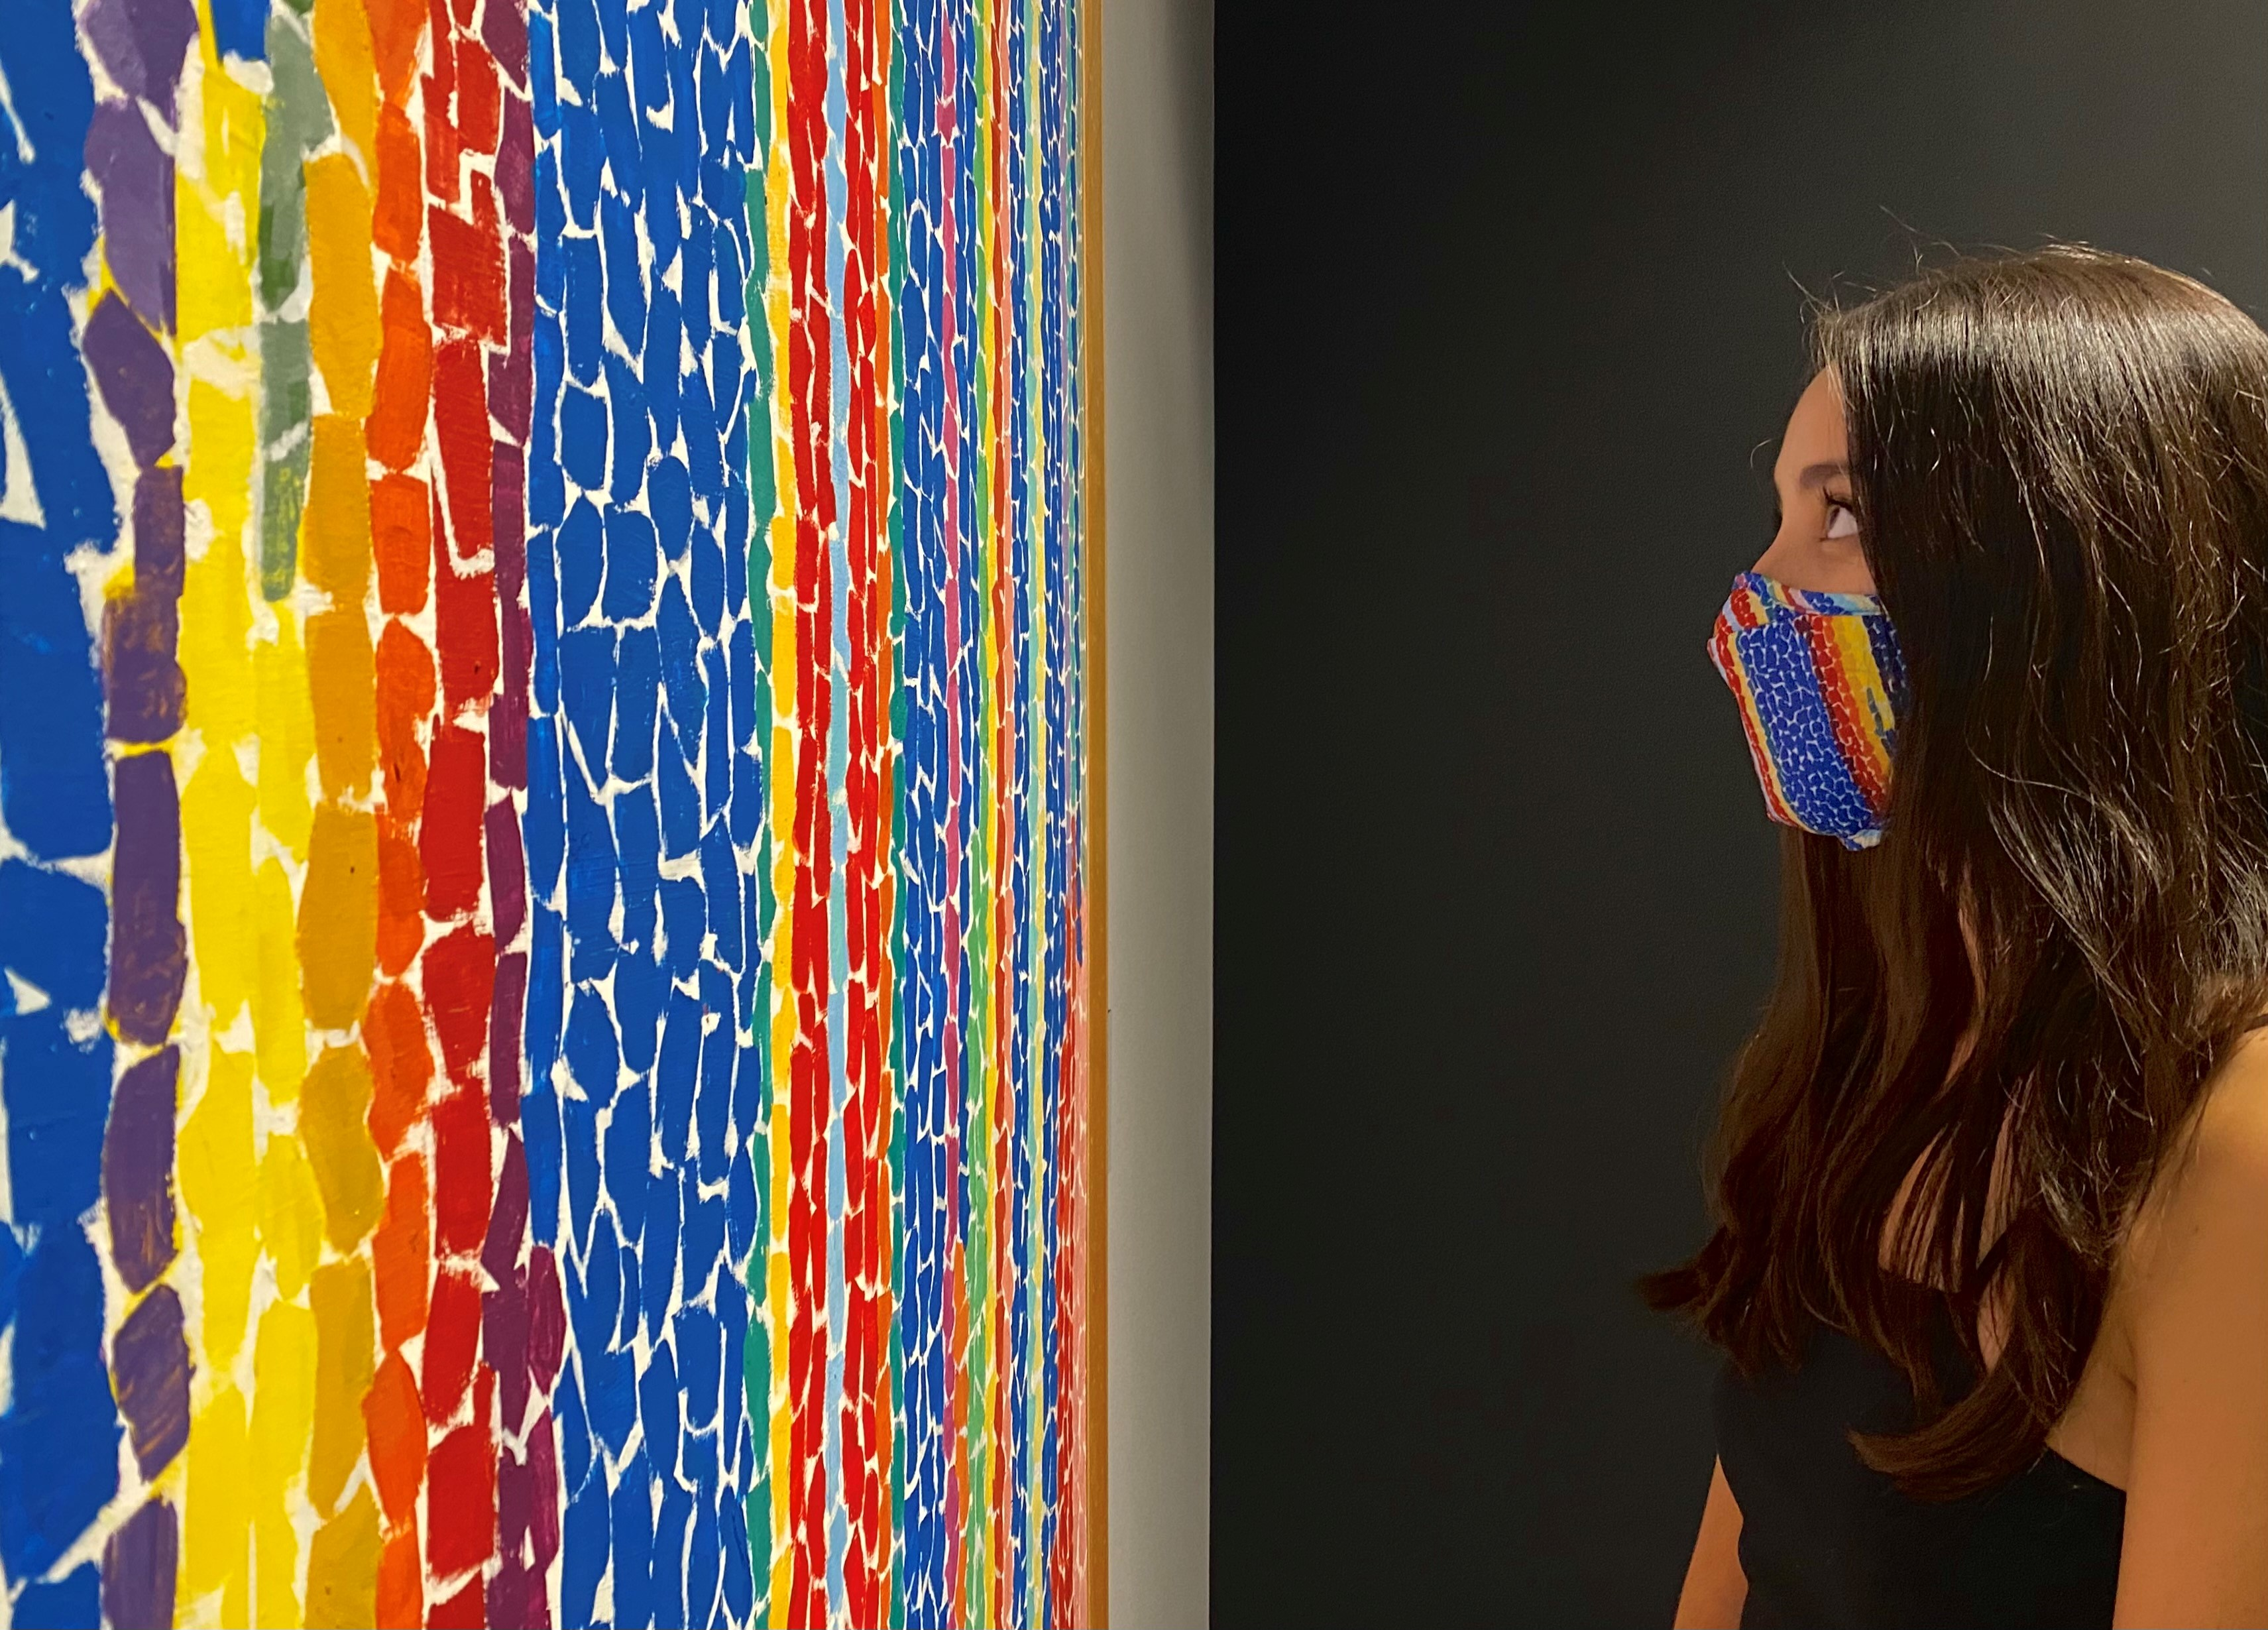 A young woman with long brown hair stands in front of a painting by Alma Thomas with long vertical bands of rainbow colored brush strokes. The woman is wearing a face mask that matches the painting.